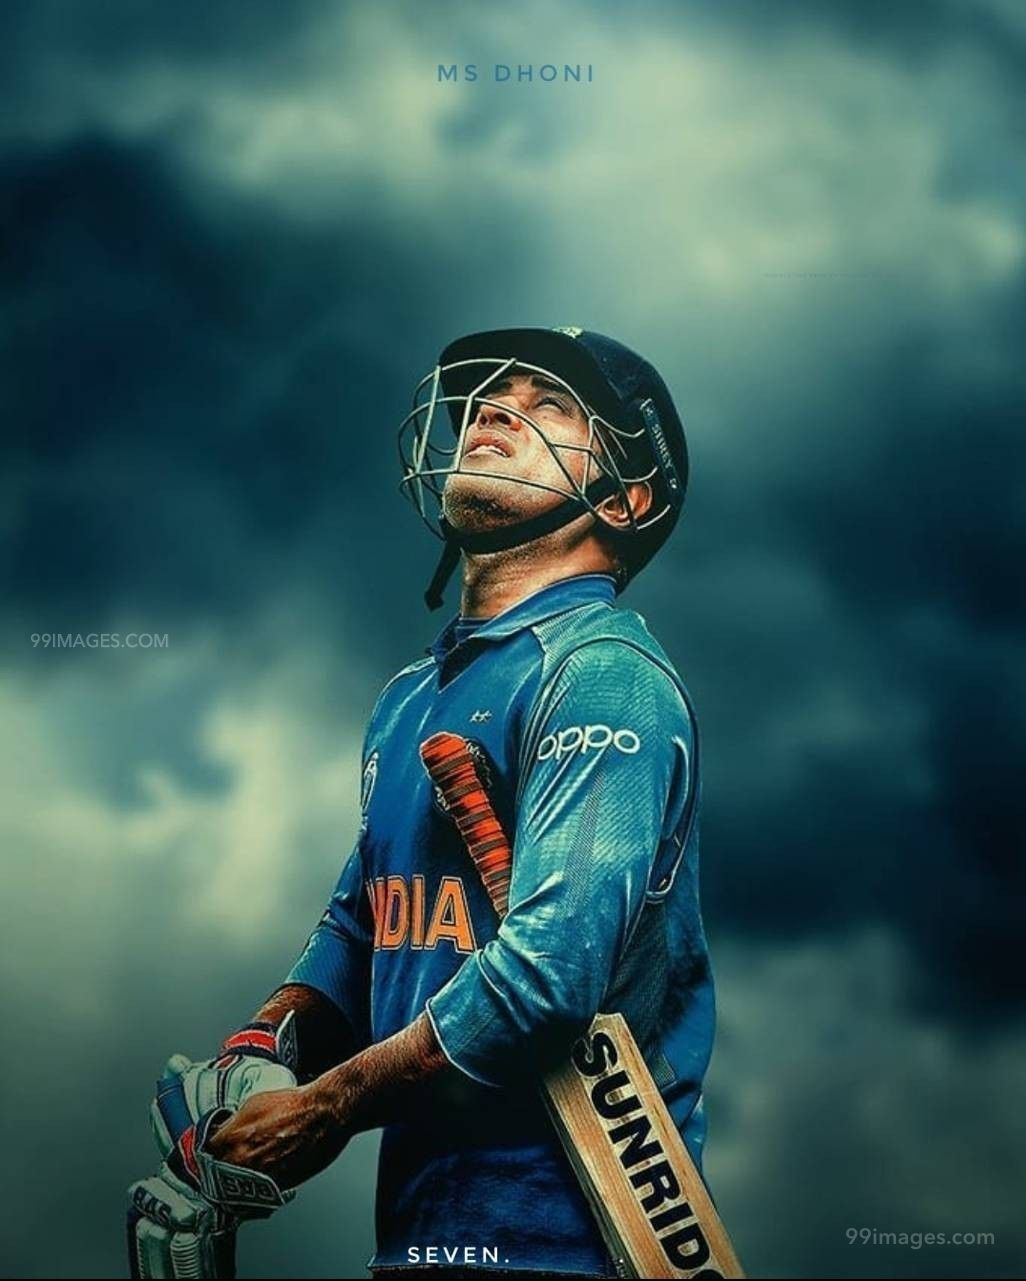 MS Dhoni 7 Looking at Sky Drawing Image / Wallpaper HD (41821) - MS Dhoni